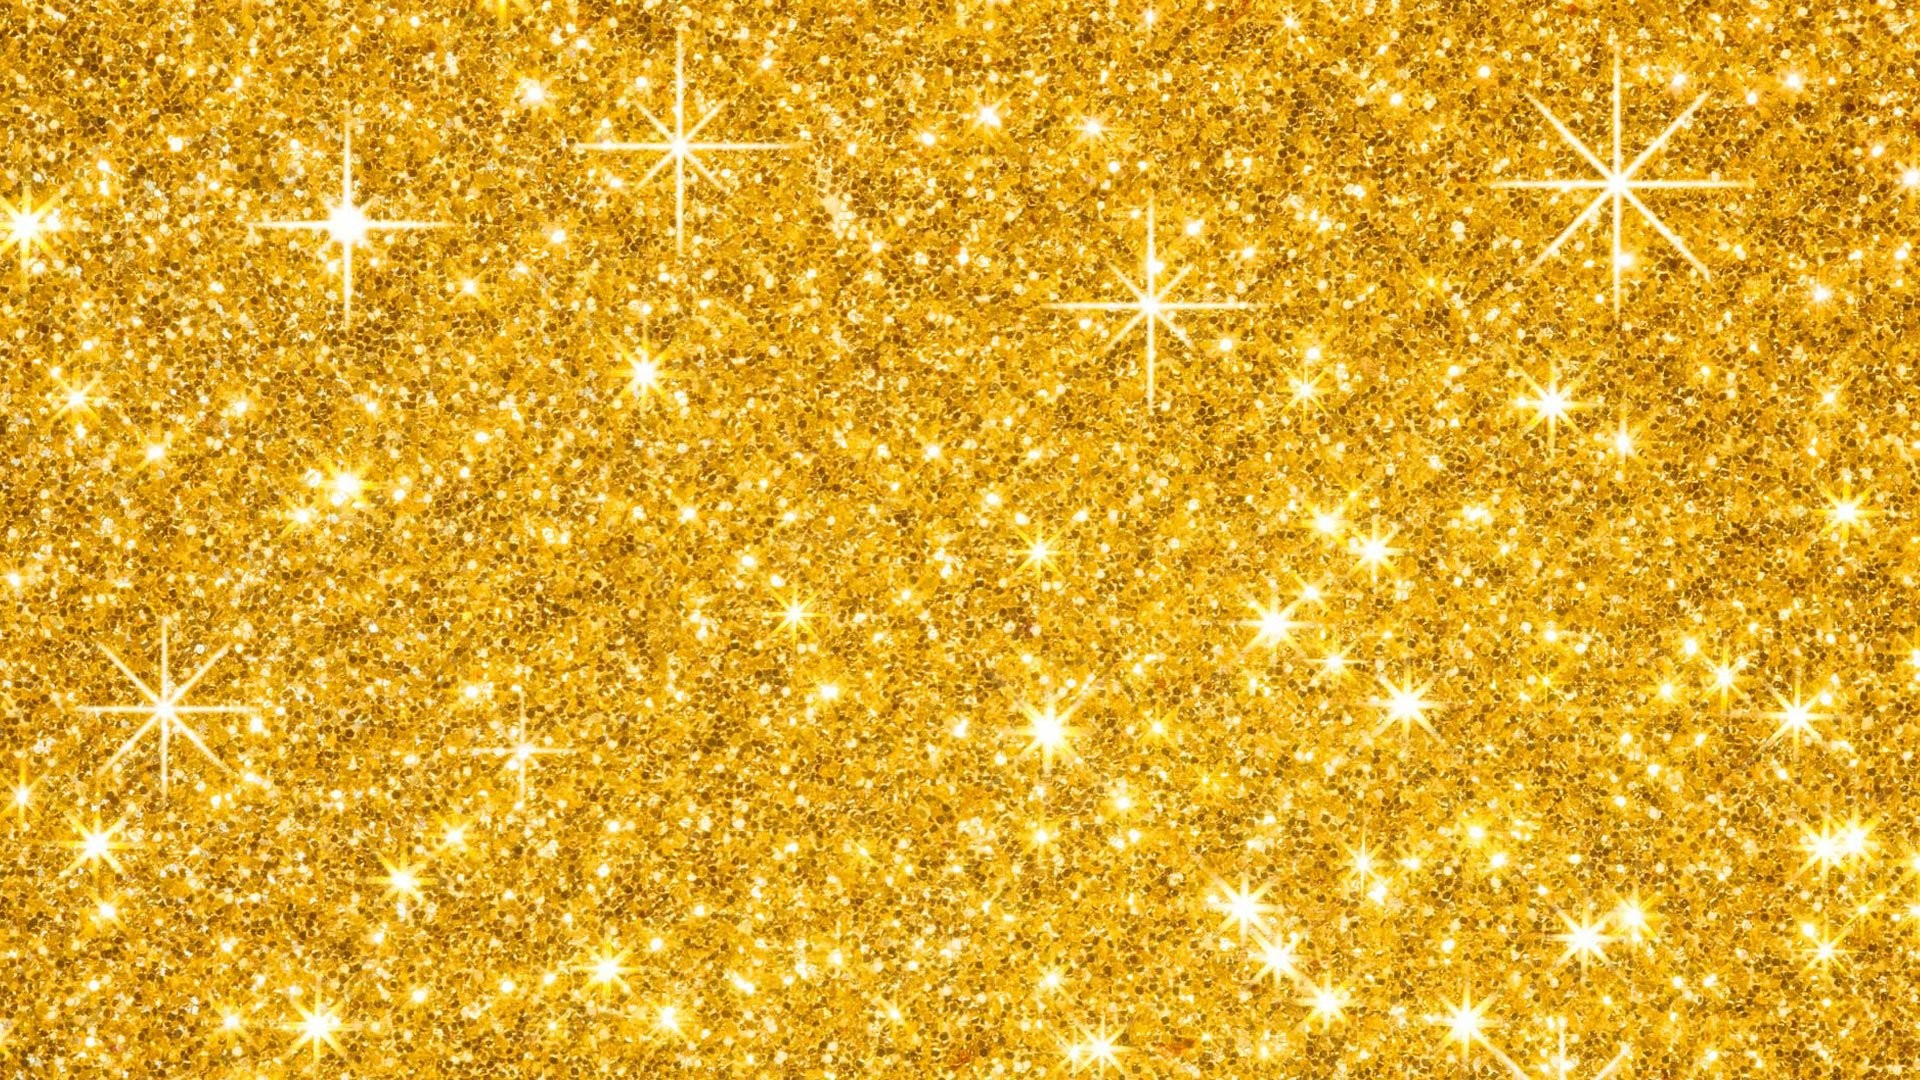 Gold Glitter Background HD Wallpaper | Sfondo | 1920x1080 | ID ...